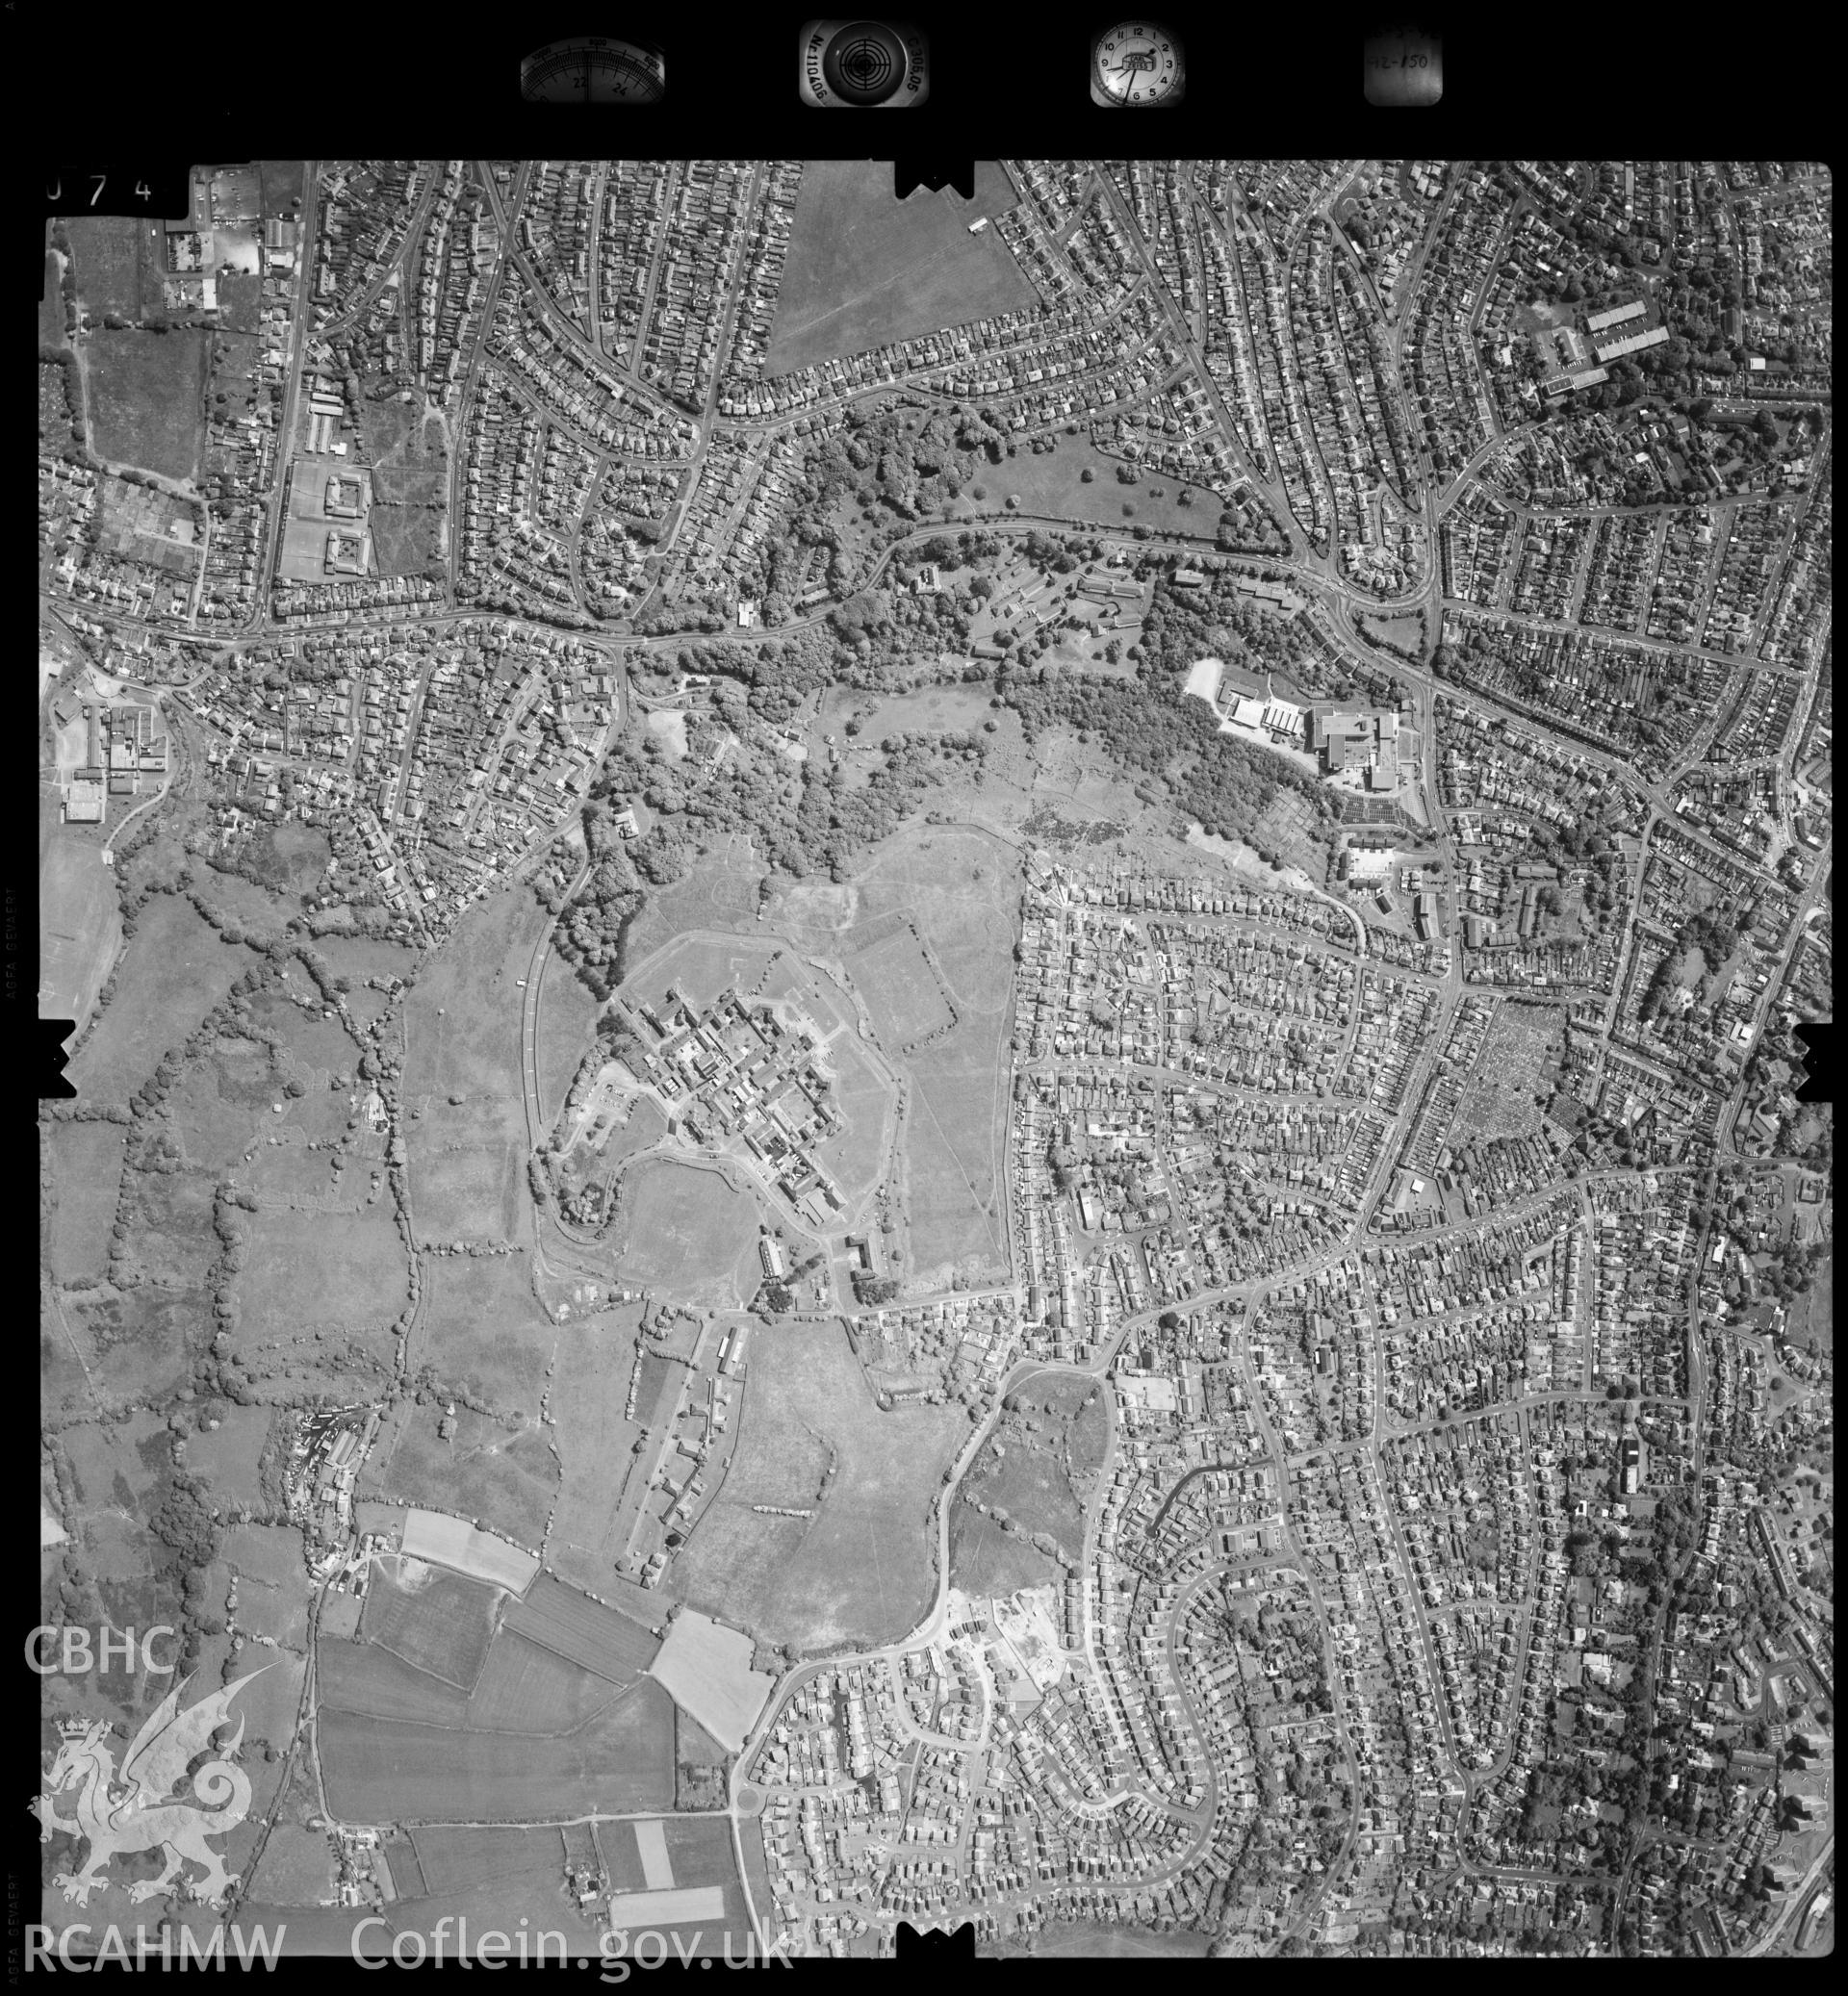 Digitized copy of an aerial photograph showing the Sketty area of Swansea, taken by Ordnance Survey, 1992.